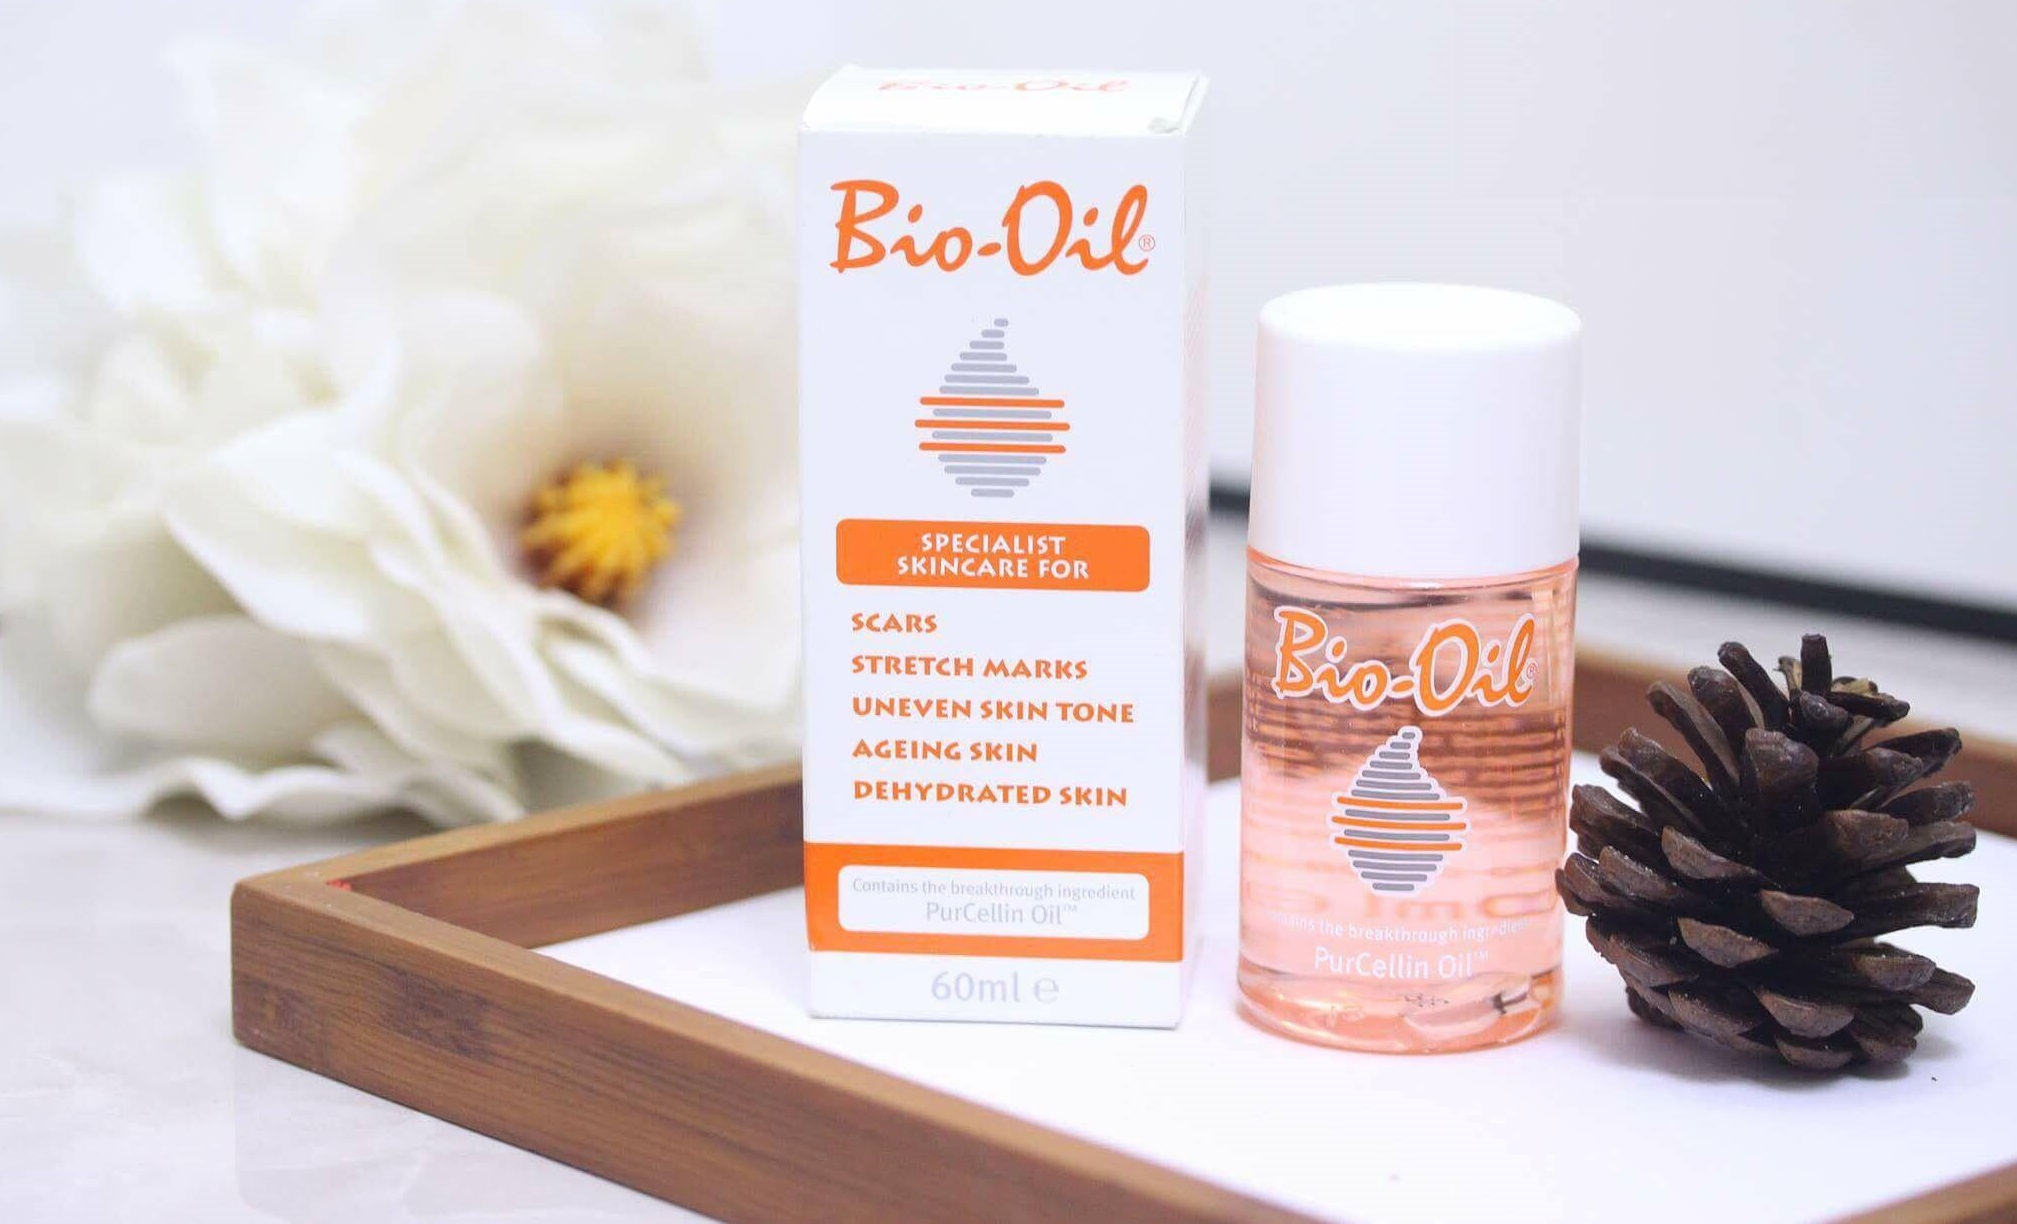 tinh-dau-tri-ran-da-bio-oil-60ml